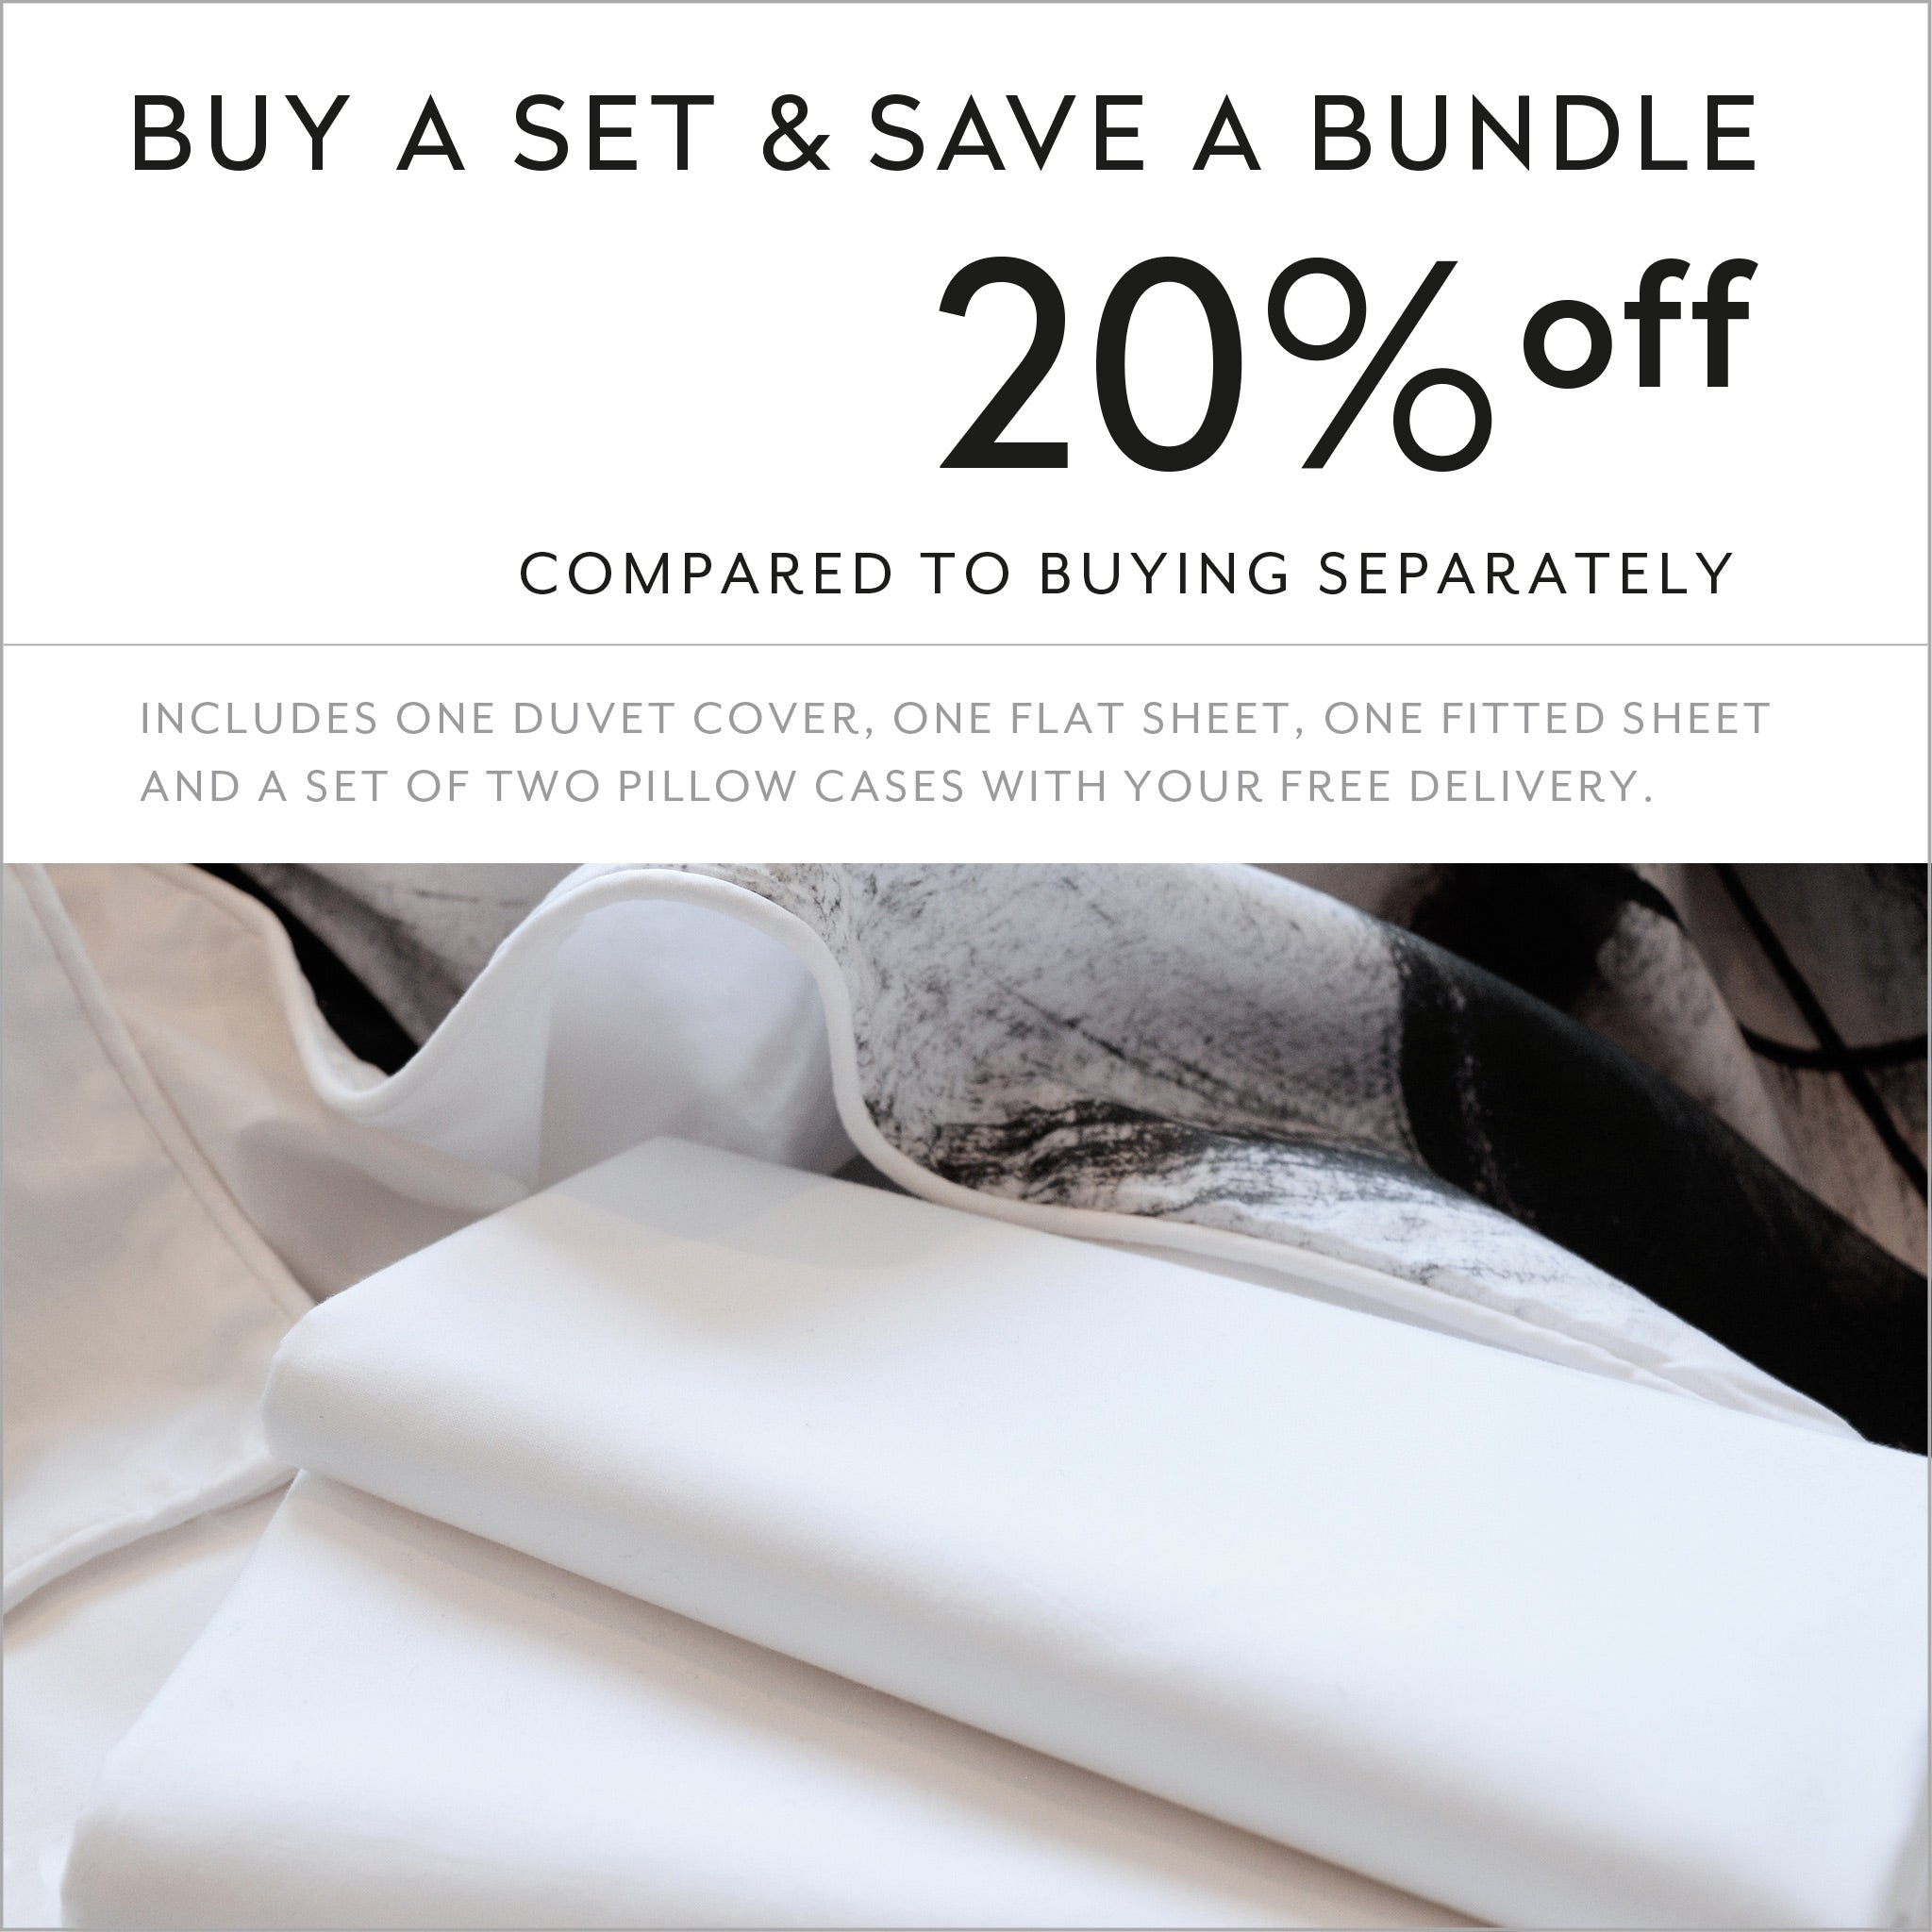 Buy a set and save 20% compared to buying separately cotton sheets and duvet cover design Through Brambles on the Moon